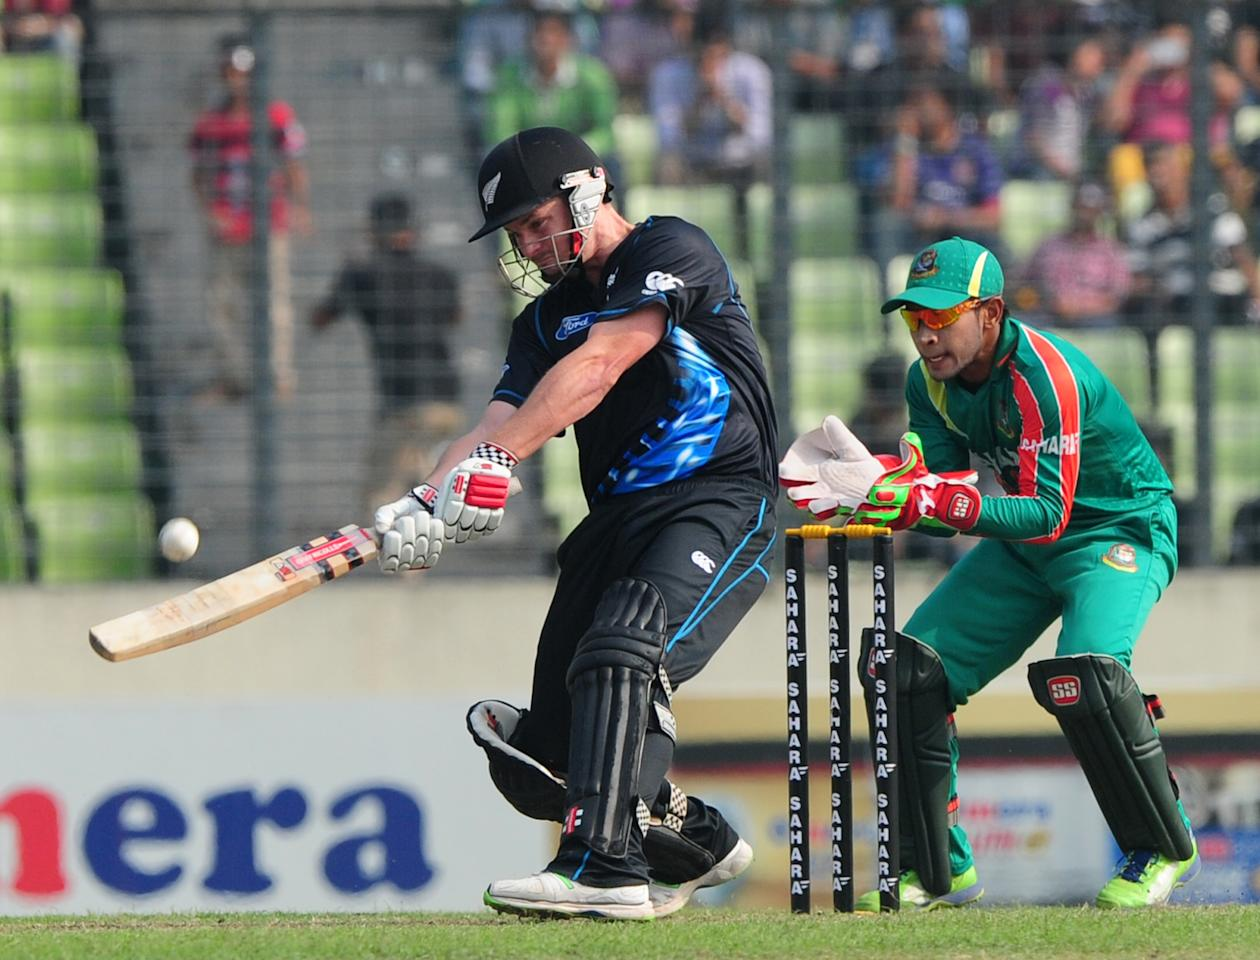 New Zealand batsman Colin Munro (L) plays a shot as Bangladesh captain Mushfiqur Rahim looks on during the T20 match between Bangladesh and Zew Zealand at the Sher-e-Bangla National Cricket Stadium in Dhaka on November 6, 2013. AFP PHOTO/ Munir uz ZAMAN        (Photo credit should read MUNIR UZ ZAMAN/AFP/Getty Images)